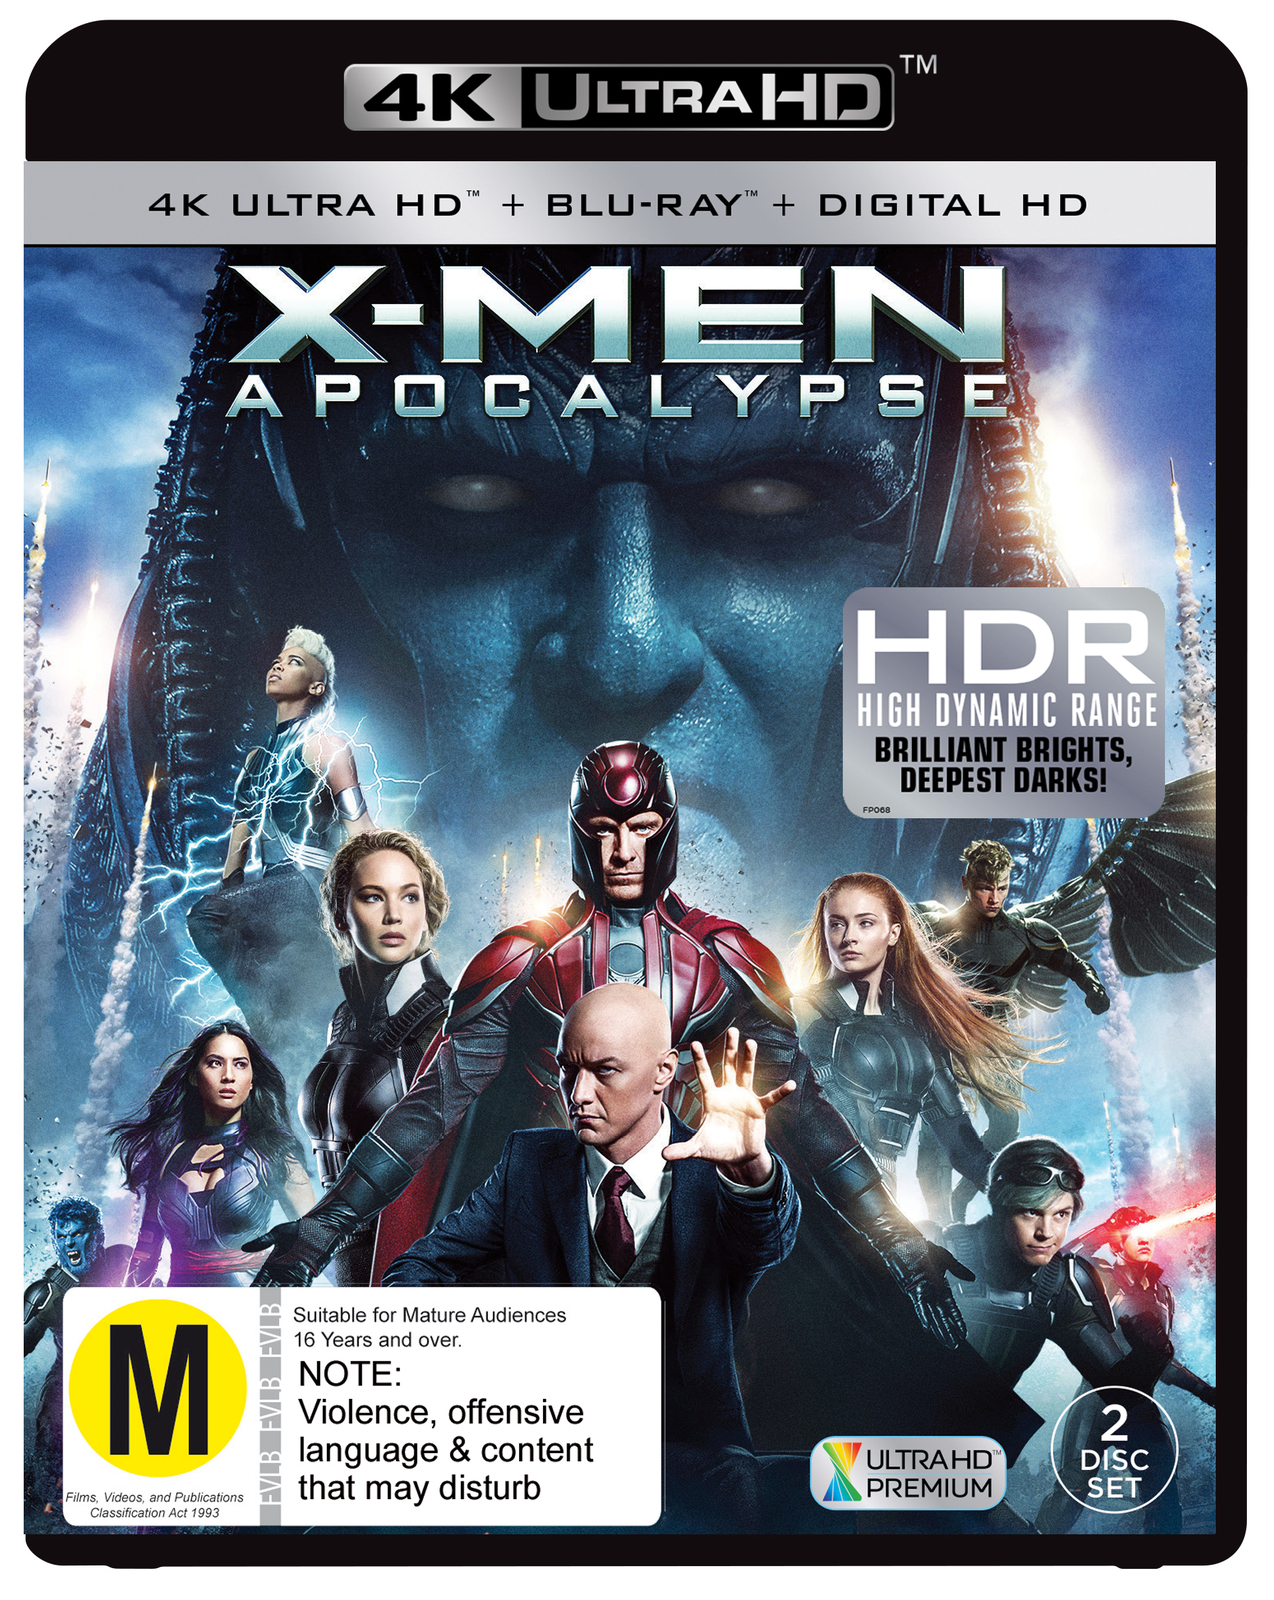 X-Men Apocalypse on Blu-ray, UHD Blu-ray image